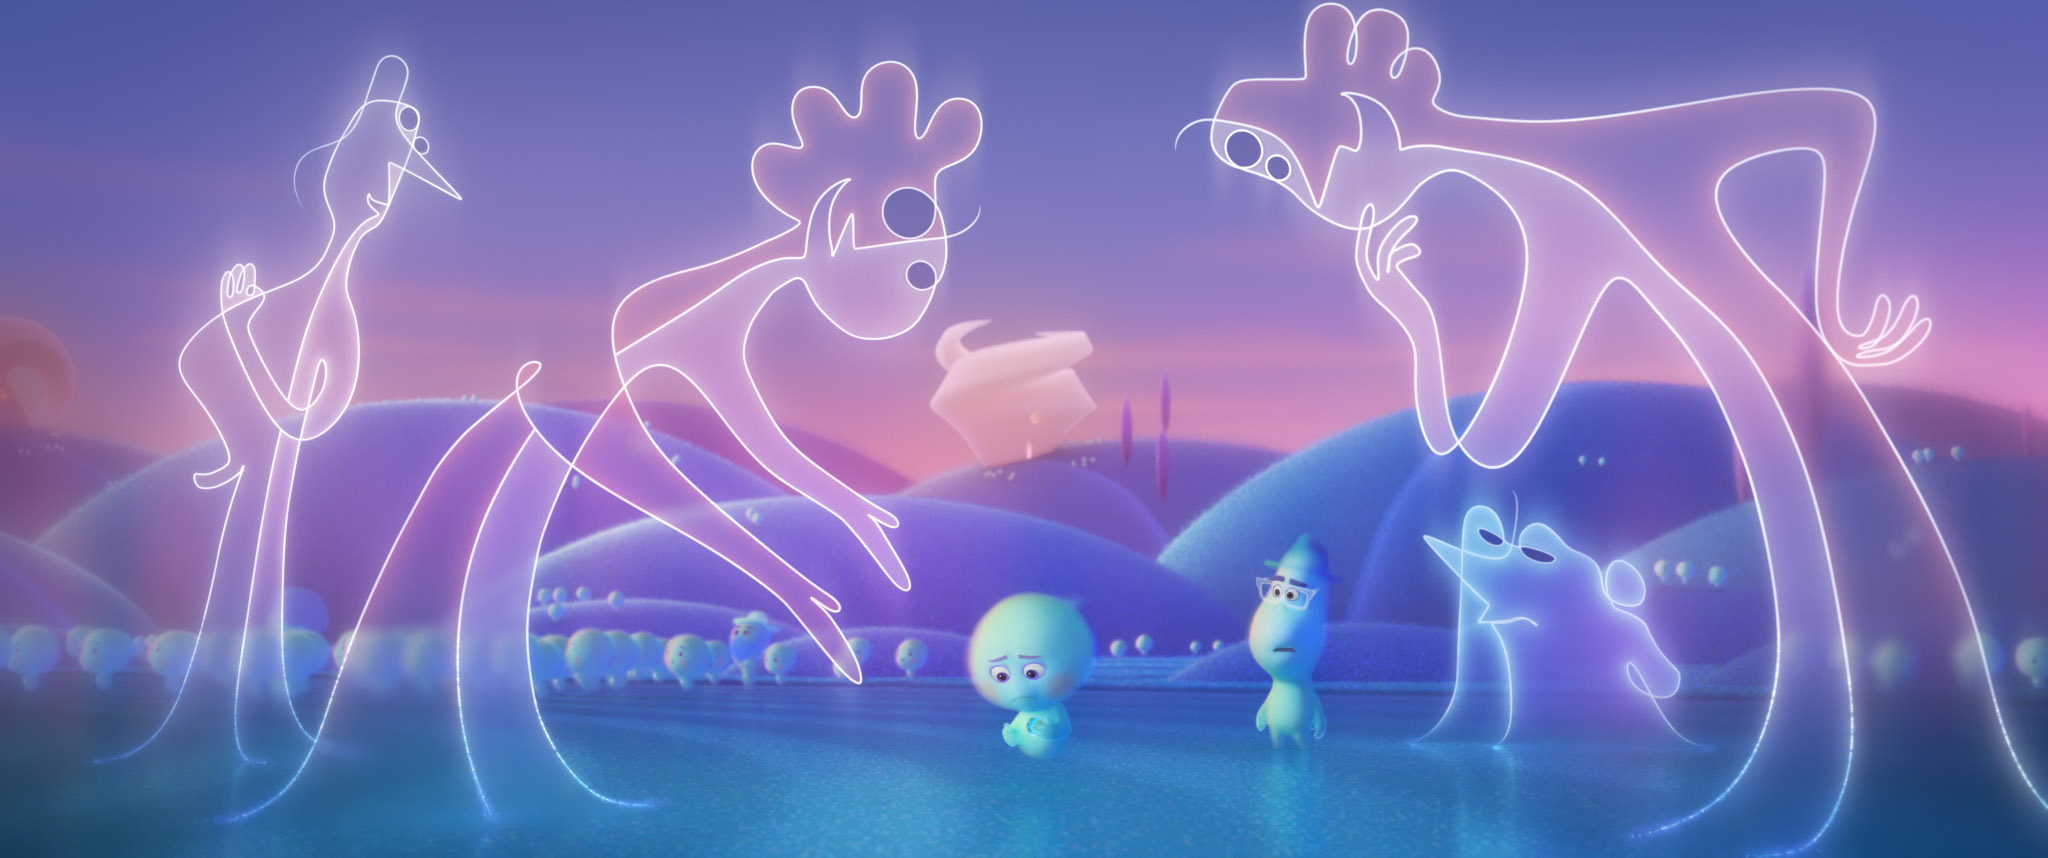 NOC Review: 'Soul' is Pixar's Jazzy Spark of Imagination, Inspiration, and Beauty